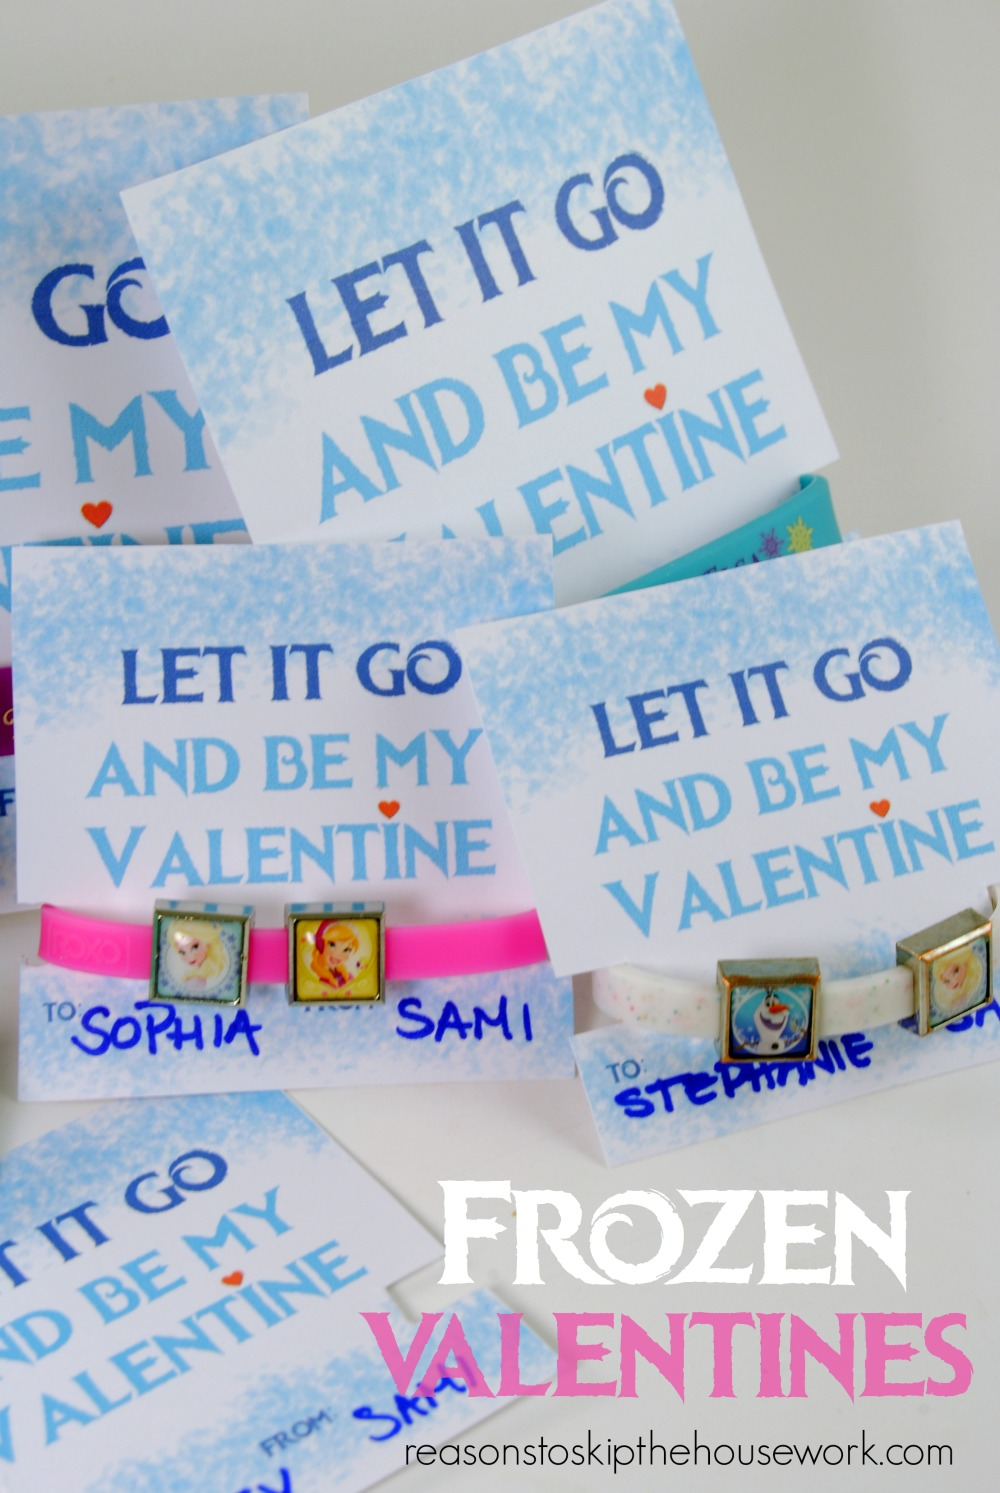 Frozen Valentine's Day Cards free printable at www.reasonstoskipthehousework.com